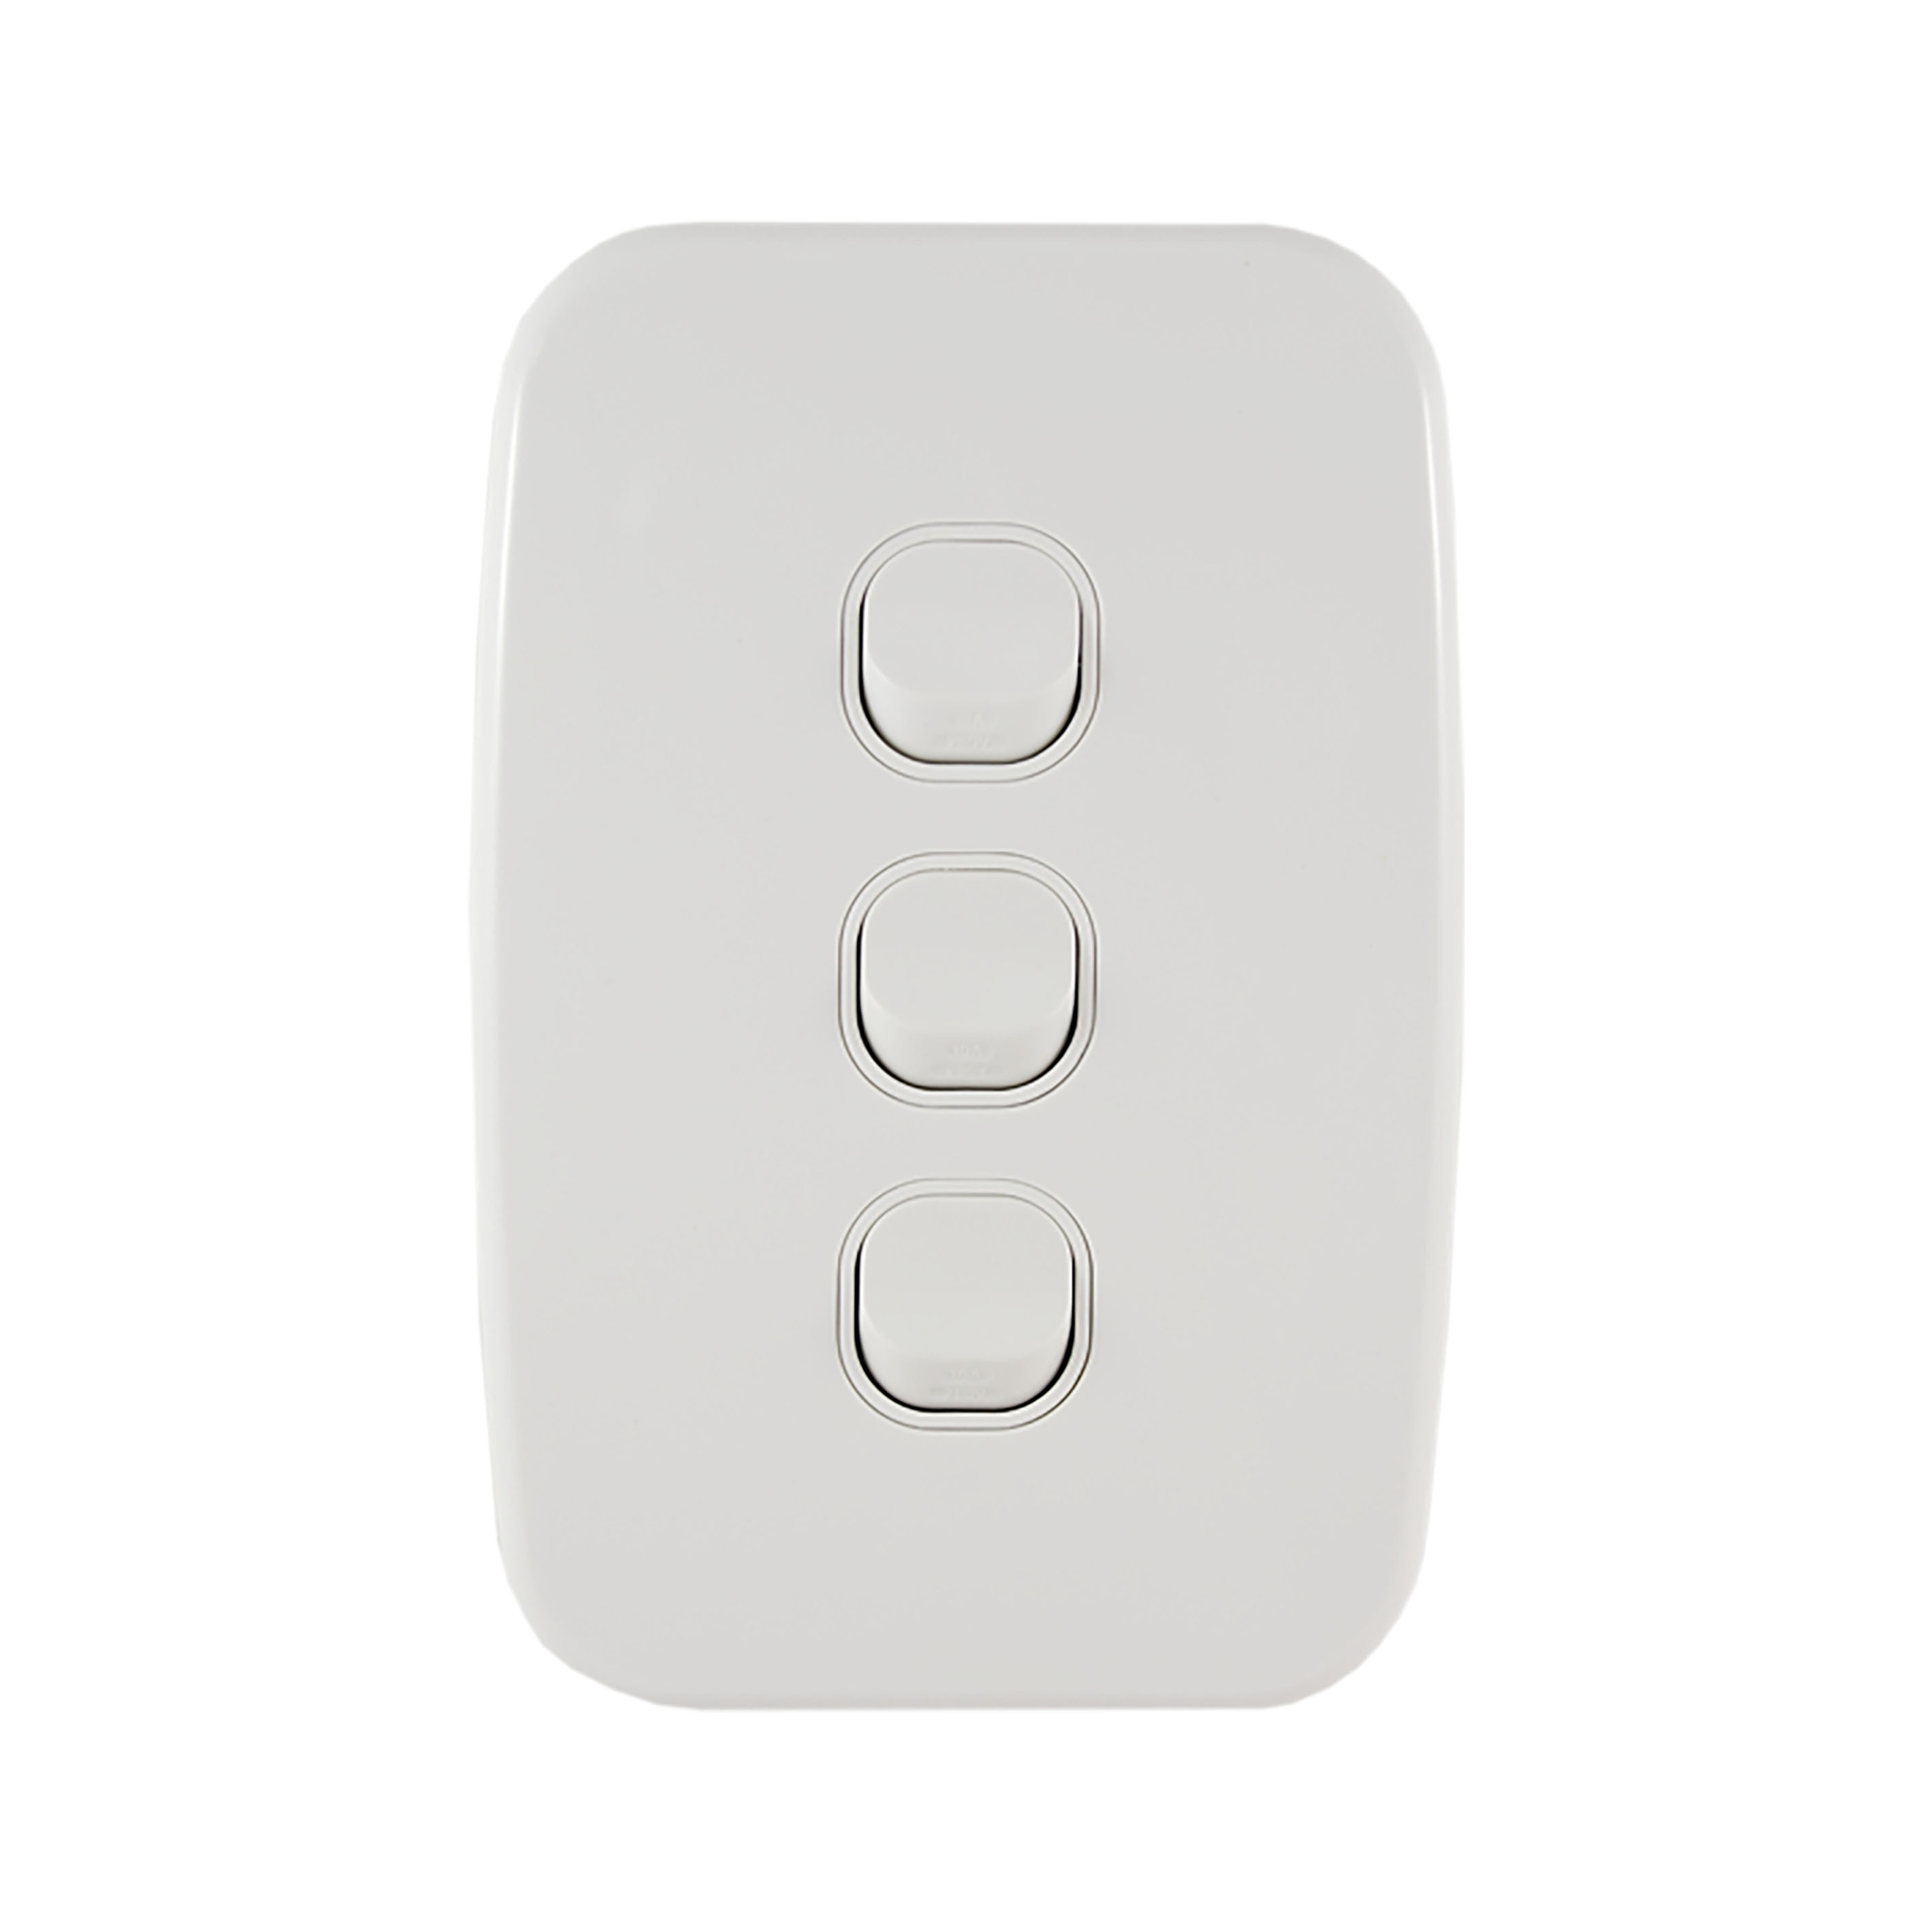 Buy A Light Switch Vertical 3 Gang Online In Australia From